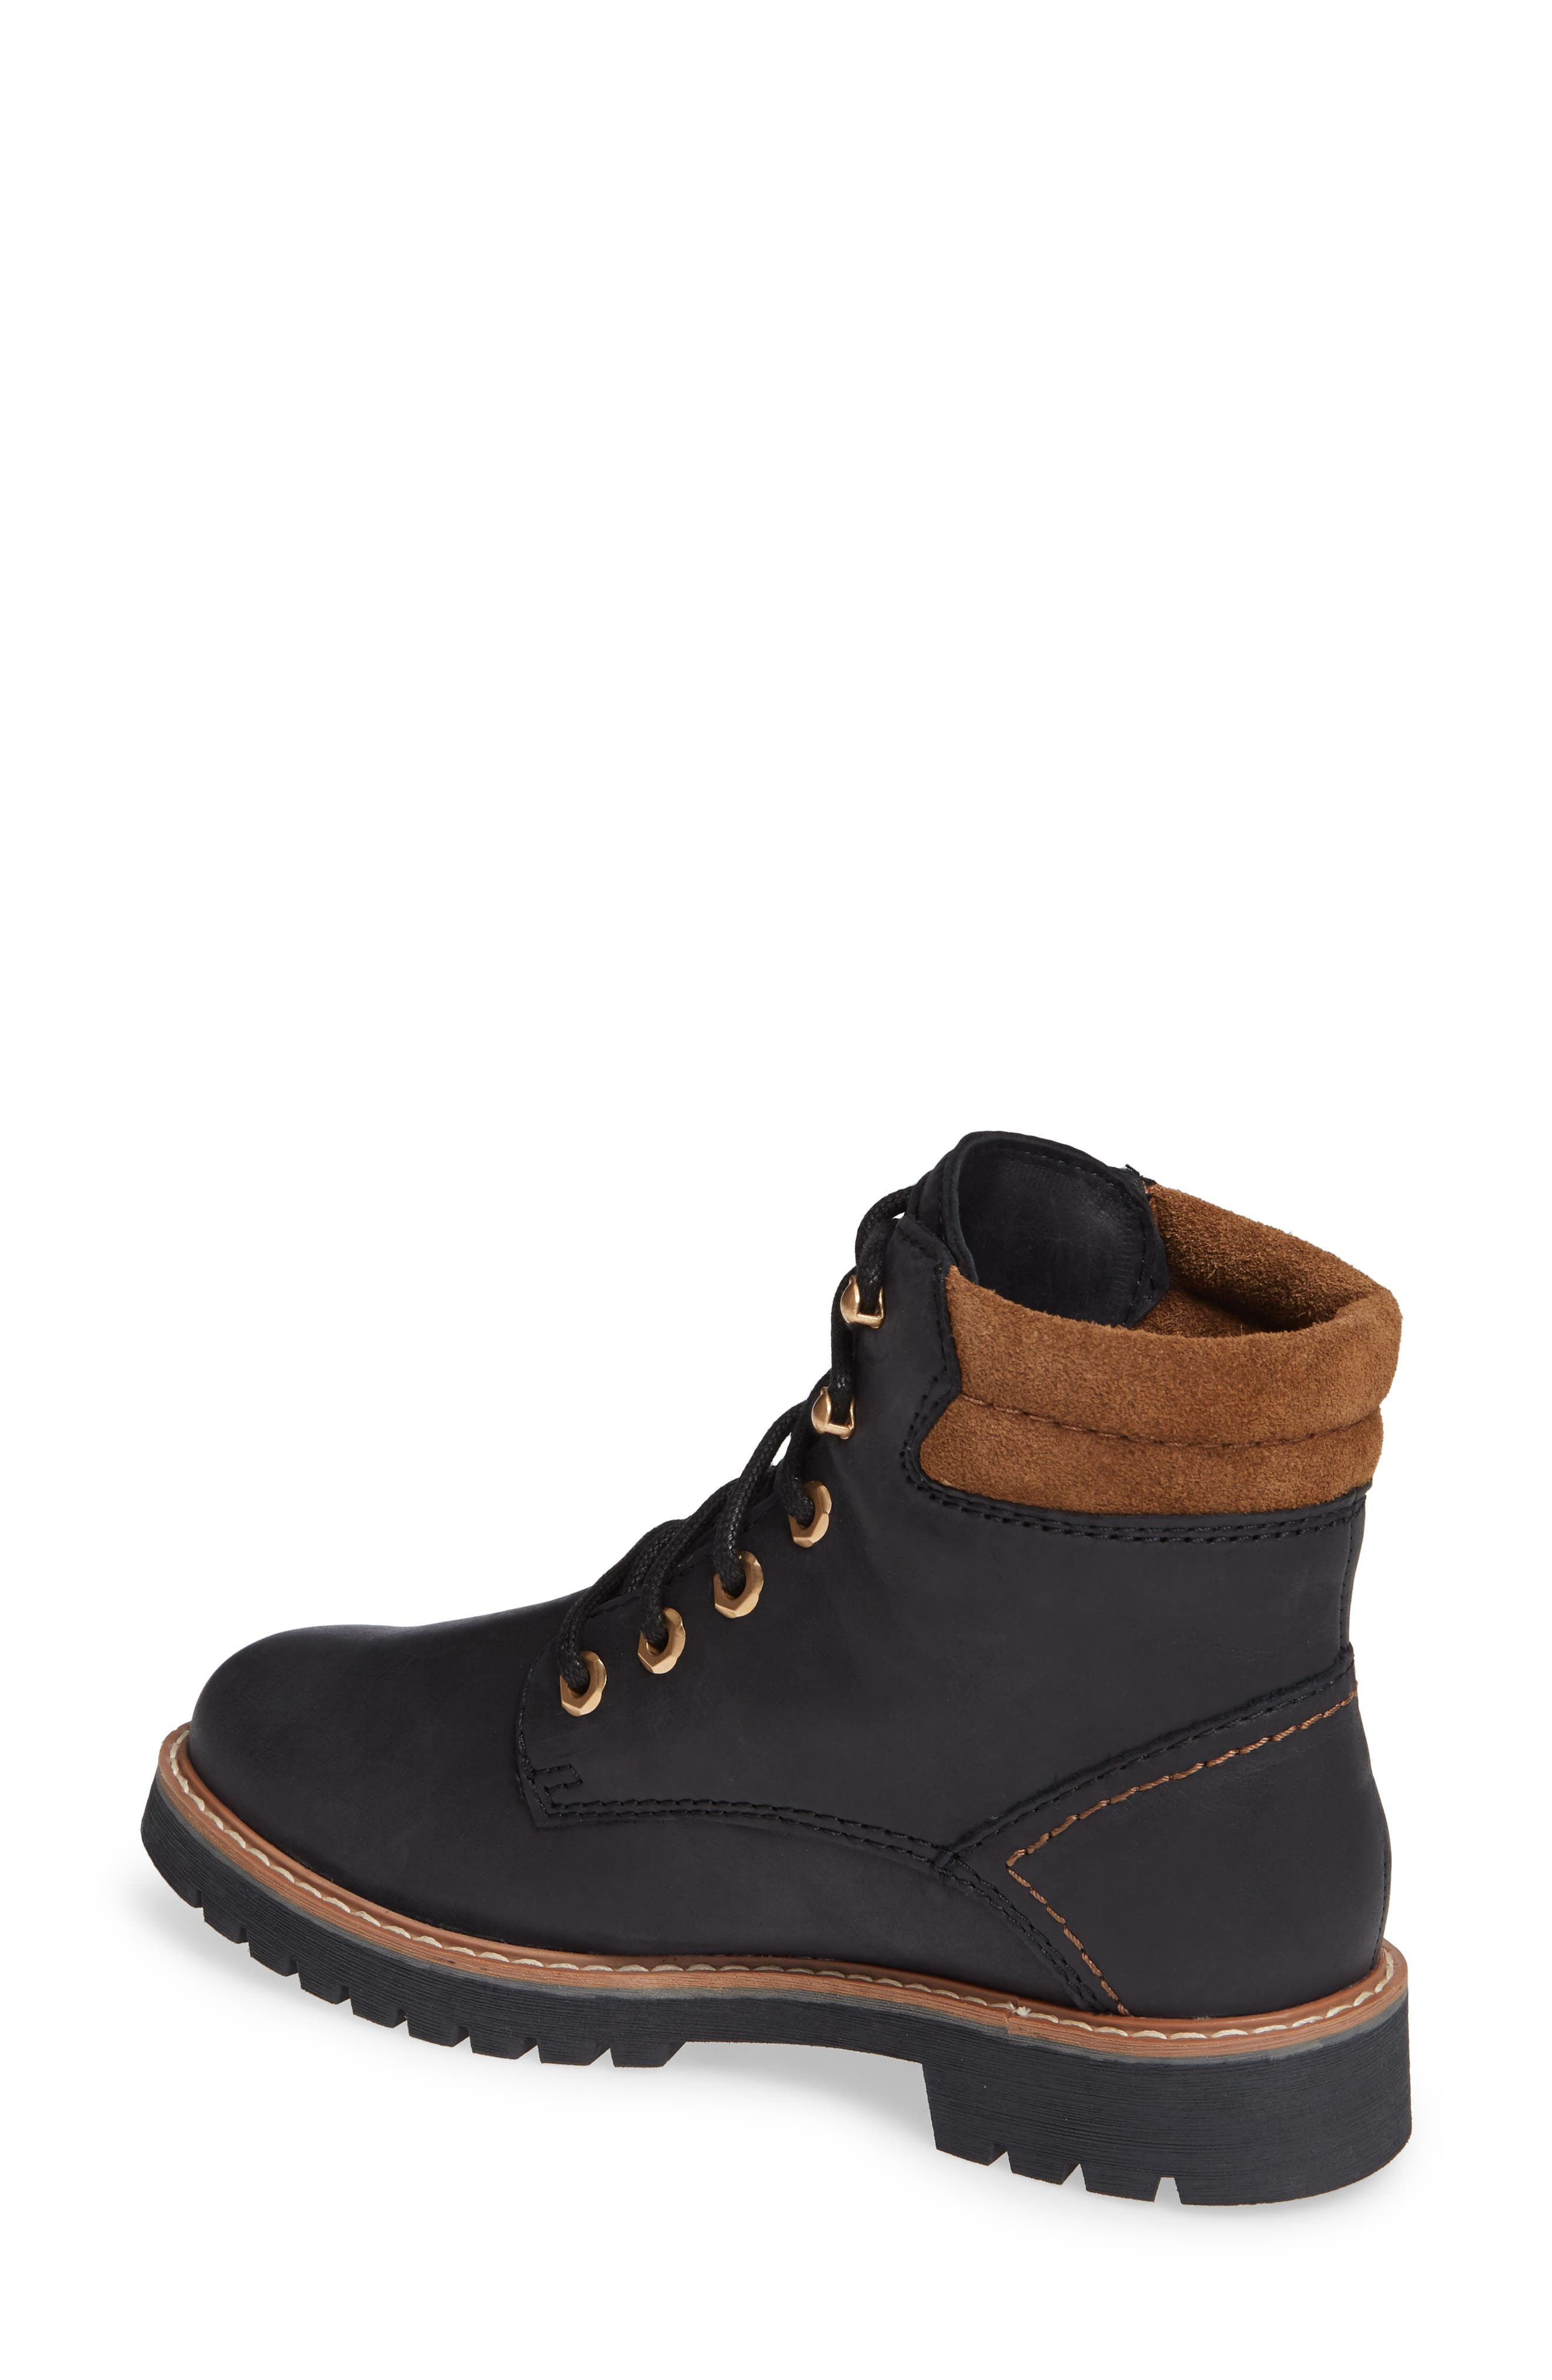 Heston Waterproof Insulated Hiking Boot,                             Alternate thumbnail 2, color,                             BLACK LEATHER